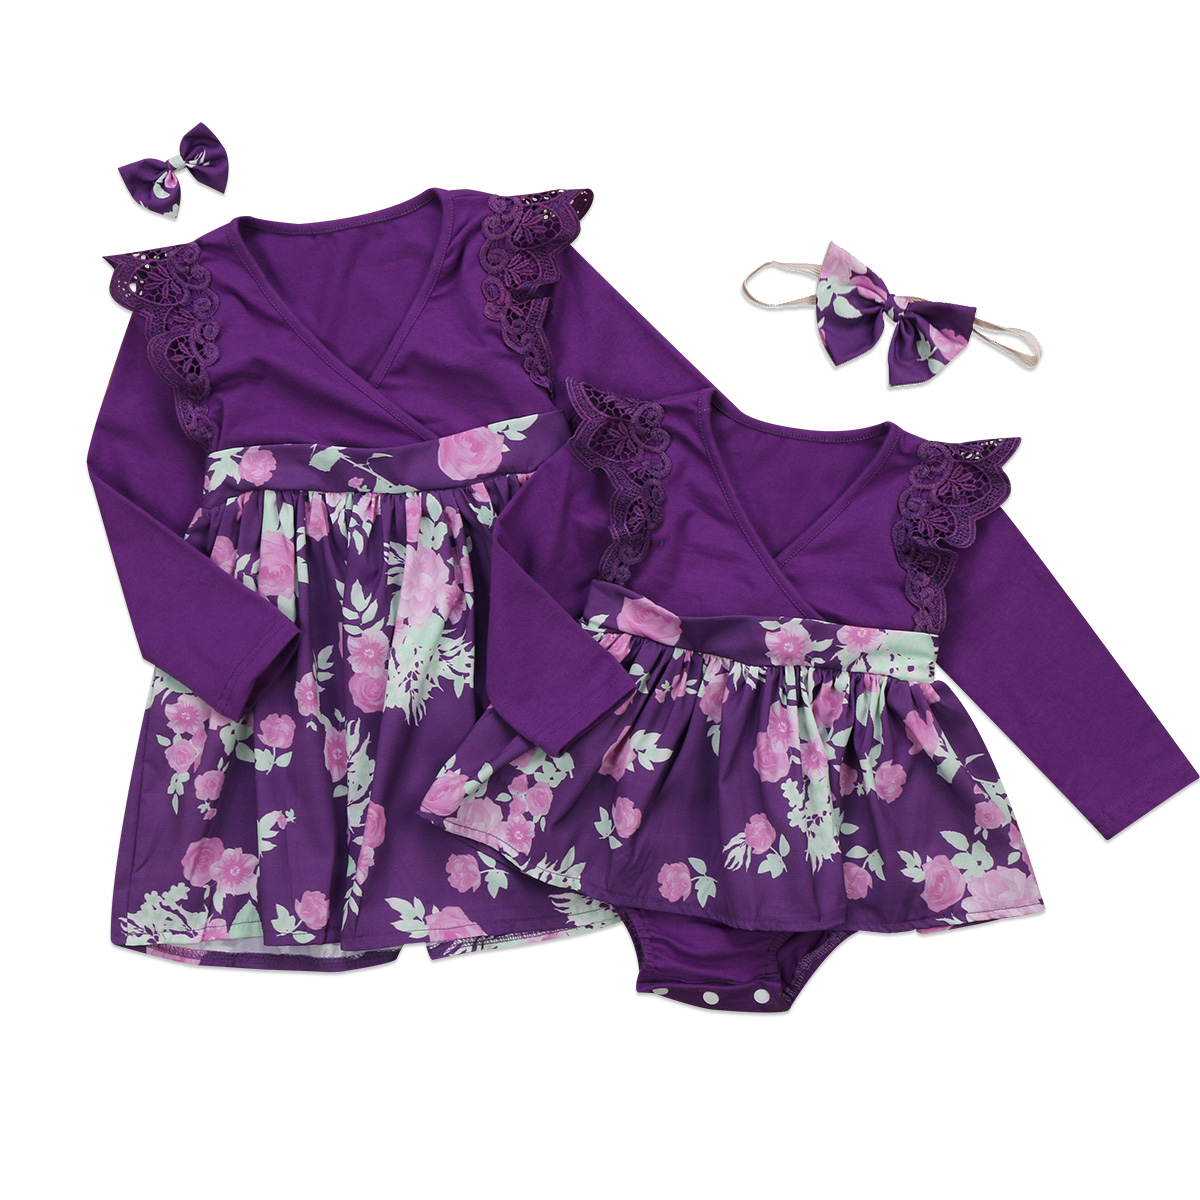 Efficient Pudcoco 2017 Newborn Baby Girls Family Romper Dress Purple Flying Sleeve Matching Outfits Patchwork Bowknot Clothes Selected Material Mother & Kids